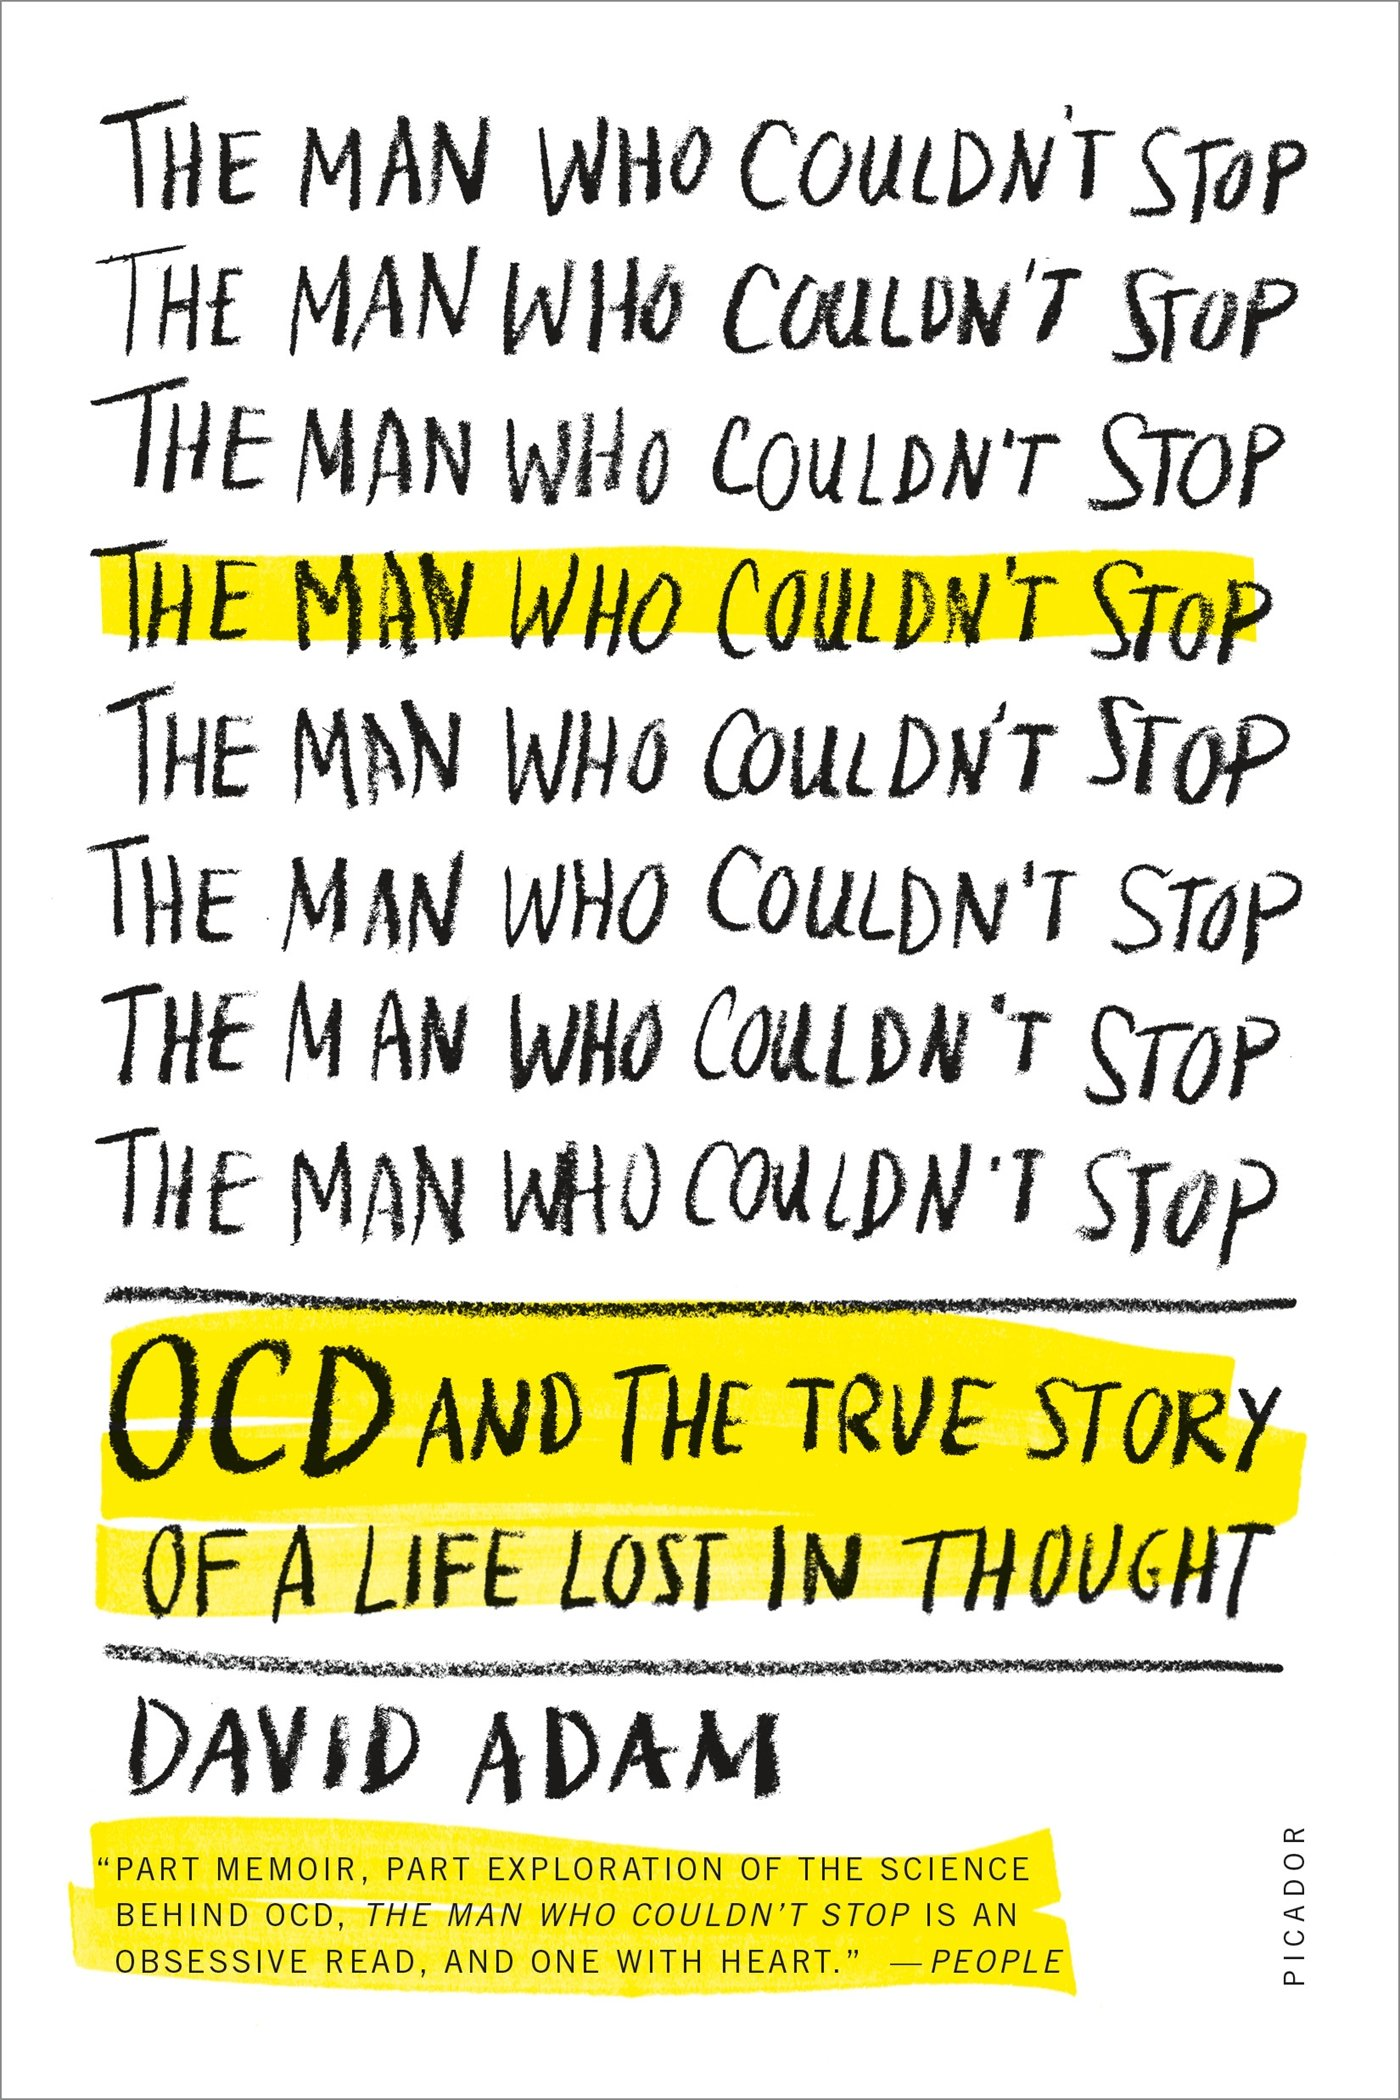 The Man Who Couldn't Stop: OCD and the True Story of a Life Lost in